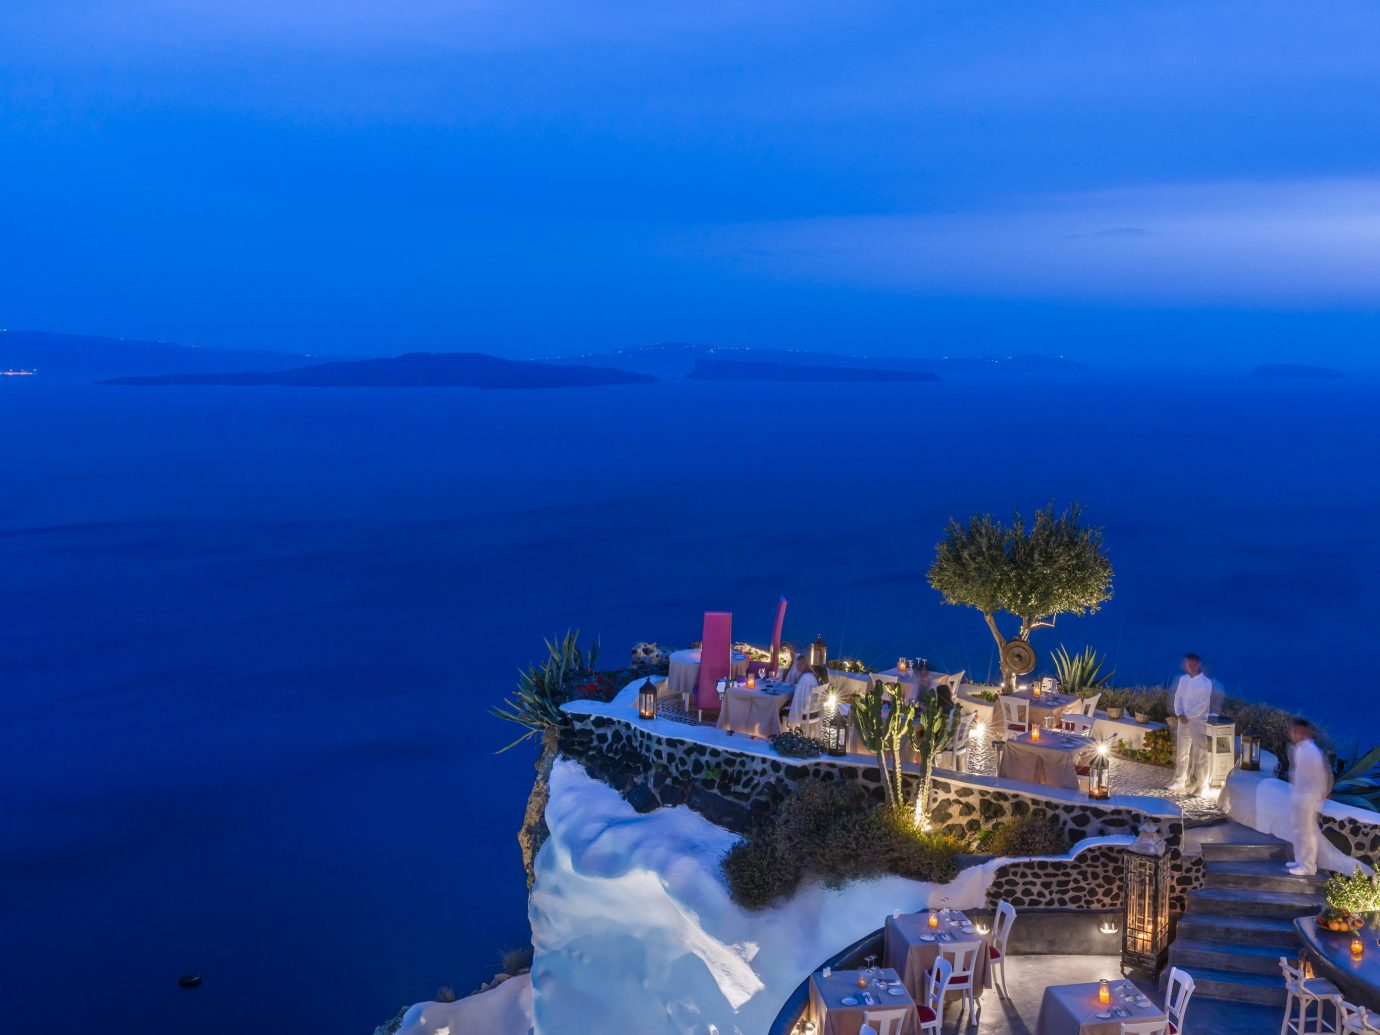 Lycabettus Restaurant overlooking the ocean in Oia, Greece